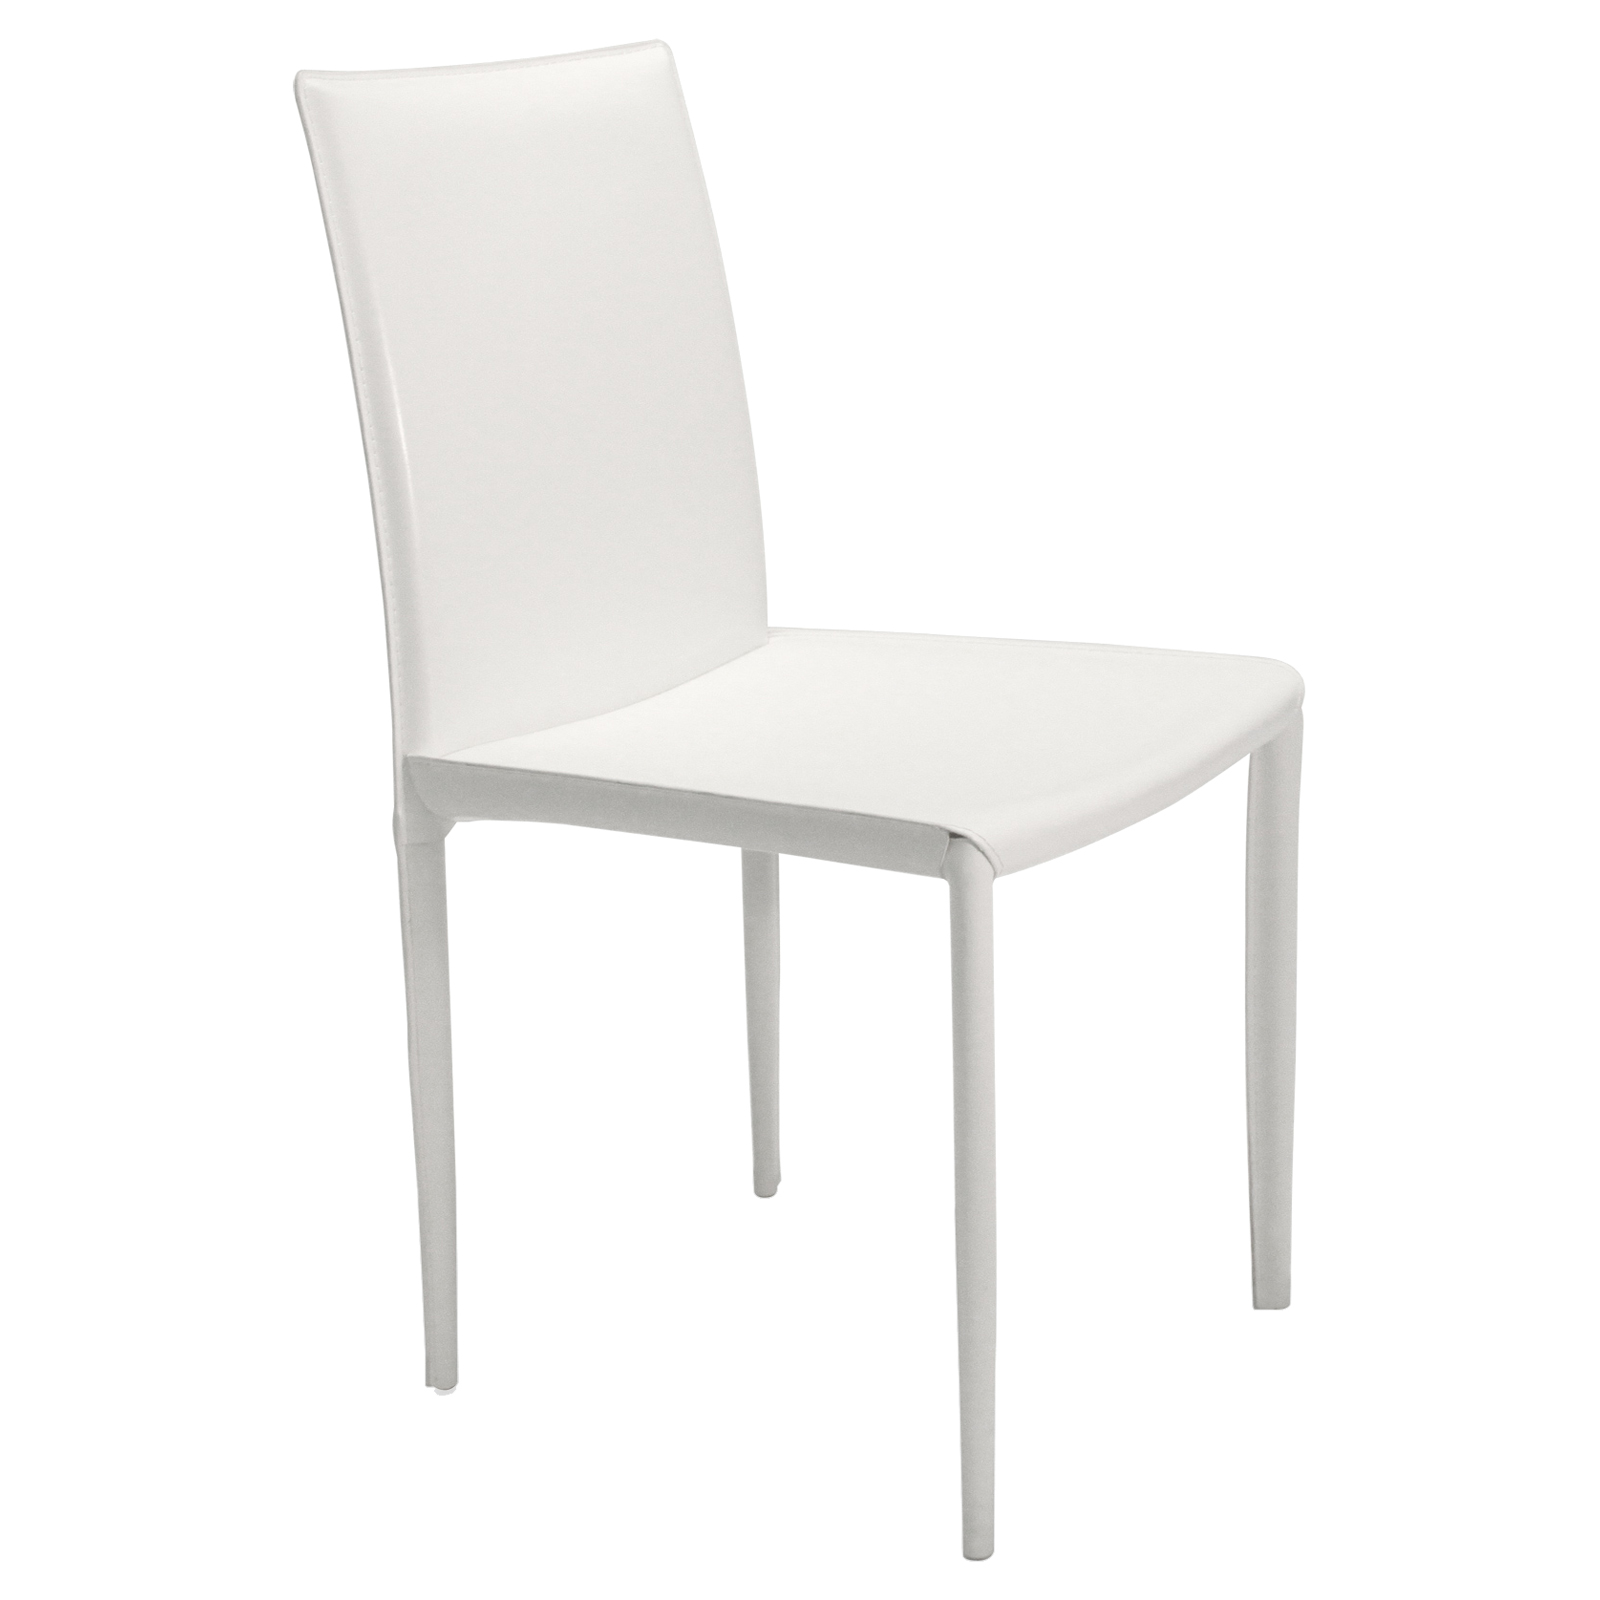 white dining chairs set of 4 how to make a chair cover for wedding aeon furniture aimee leather